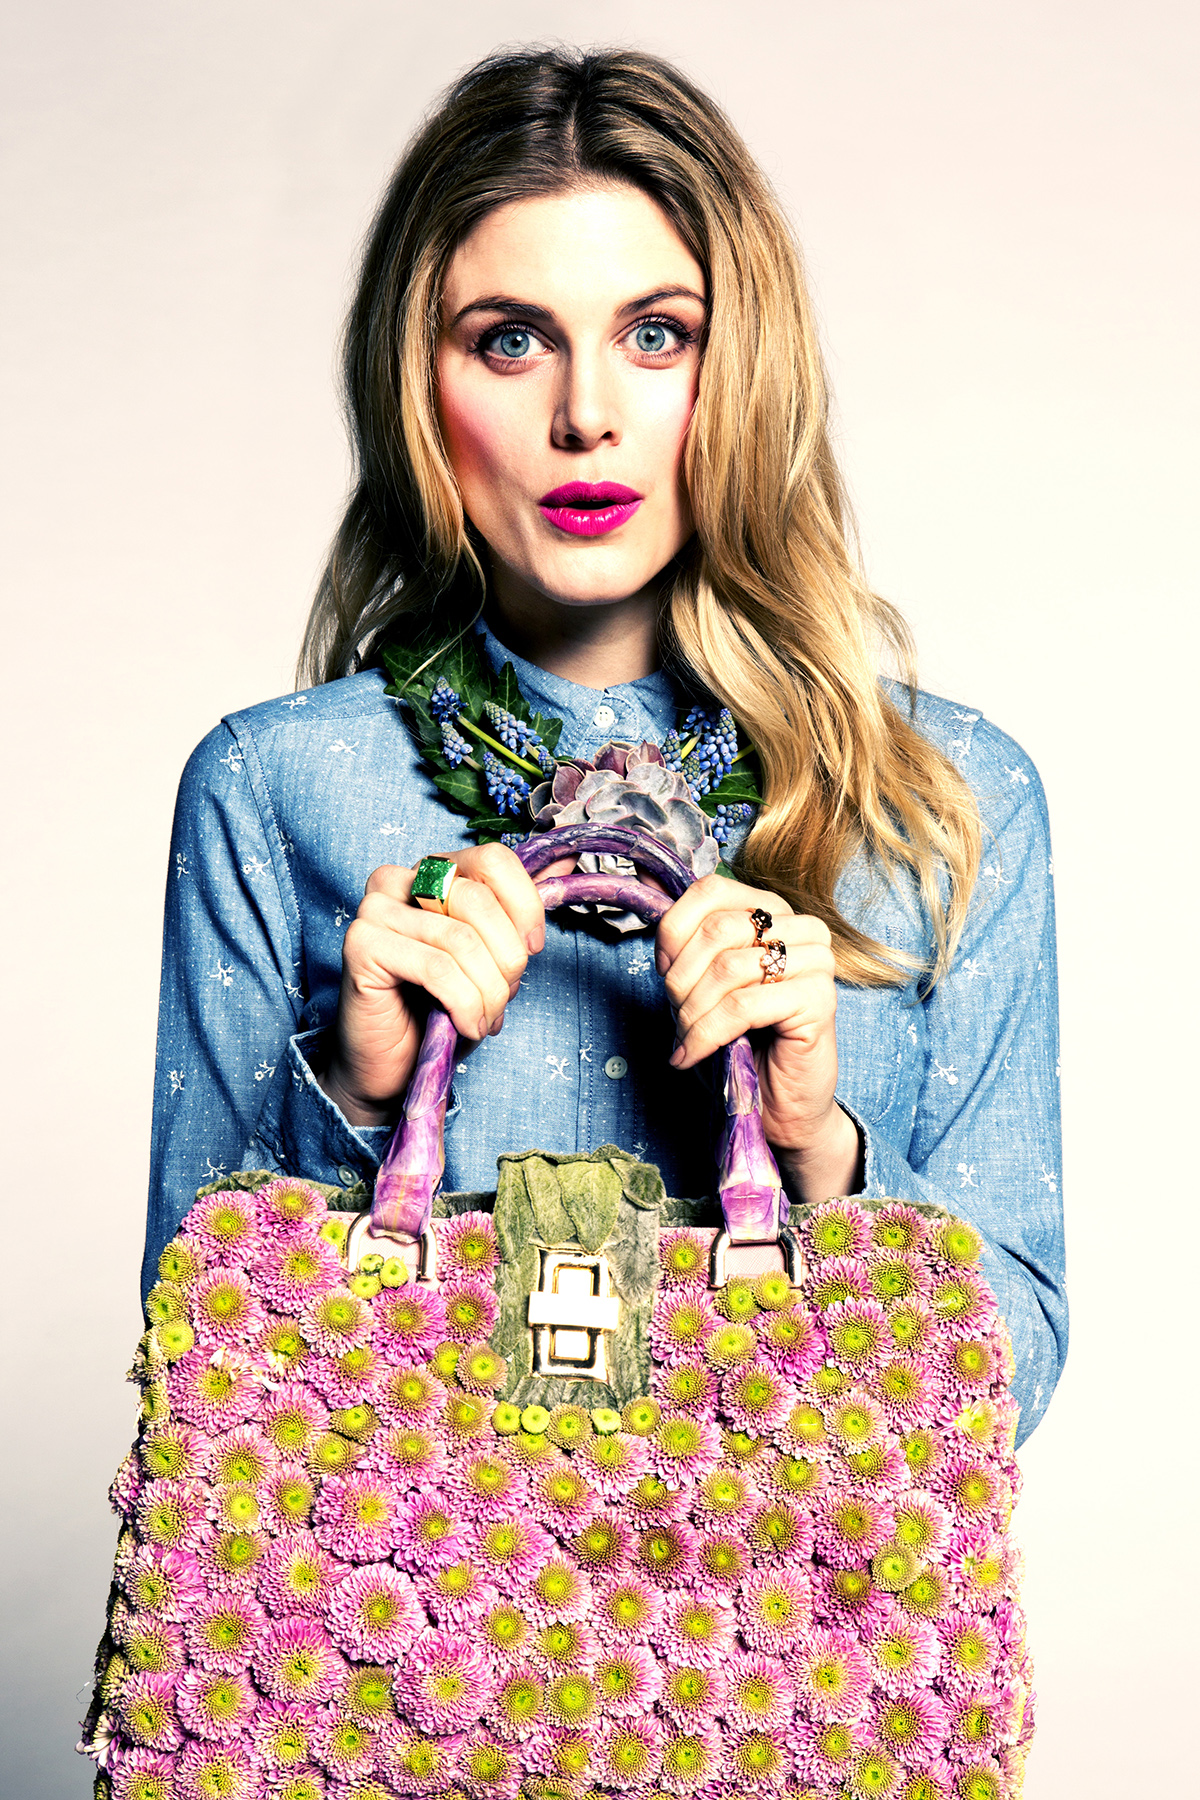 The Spring Summer accessories camaign at McArthurGlen Designer Outlets UK -2nd 20th April, featuring Ashley James (2)